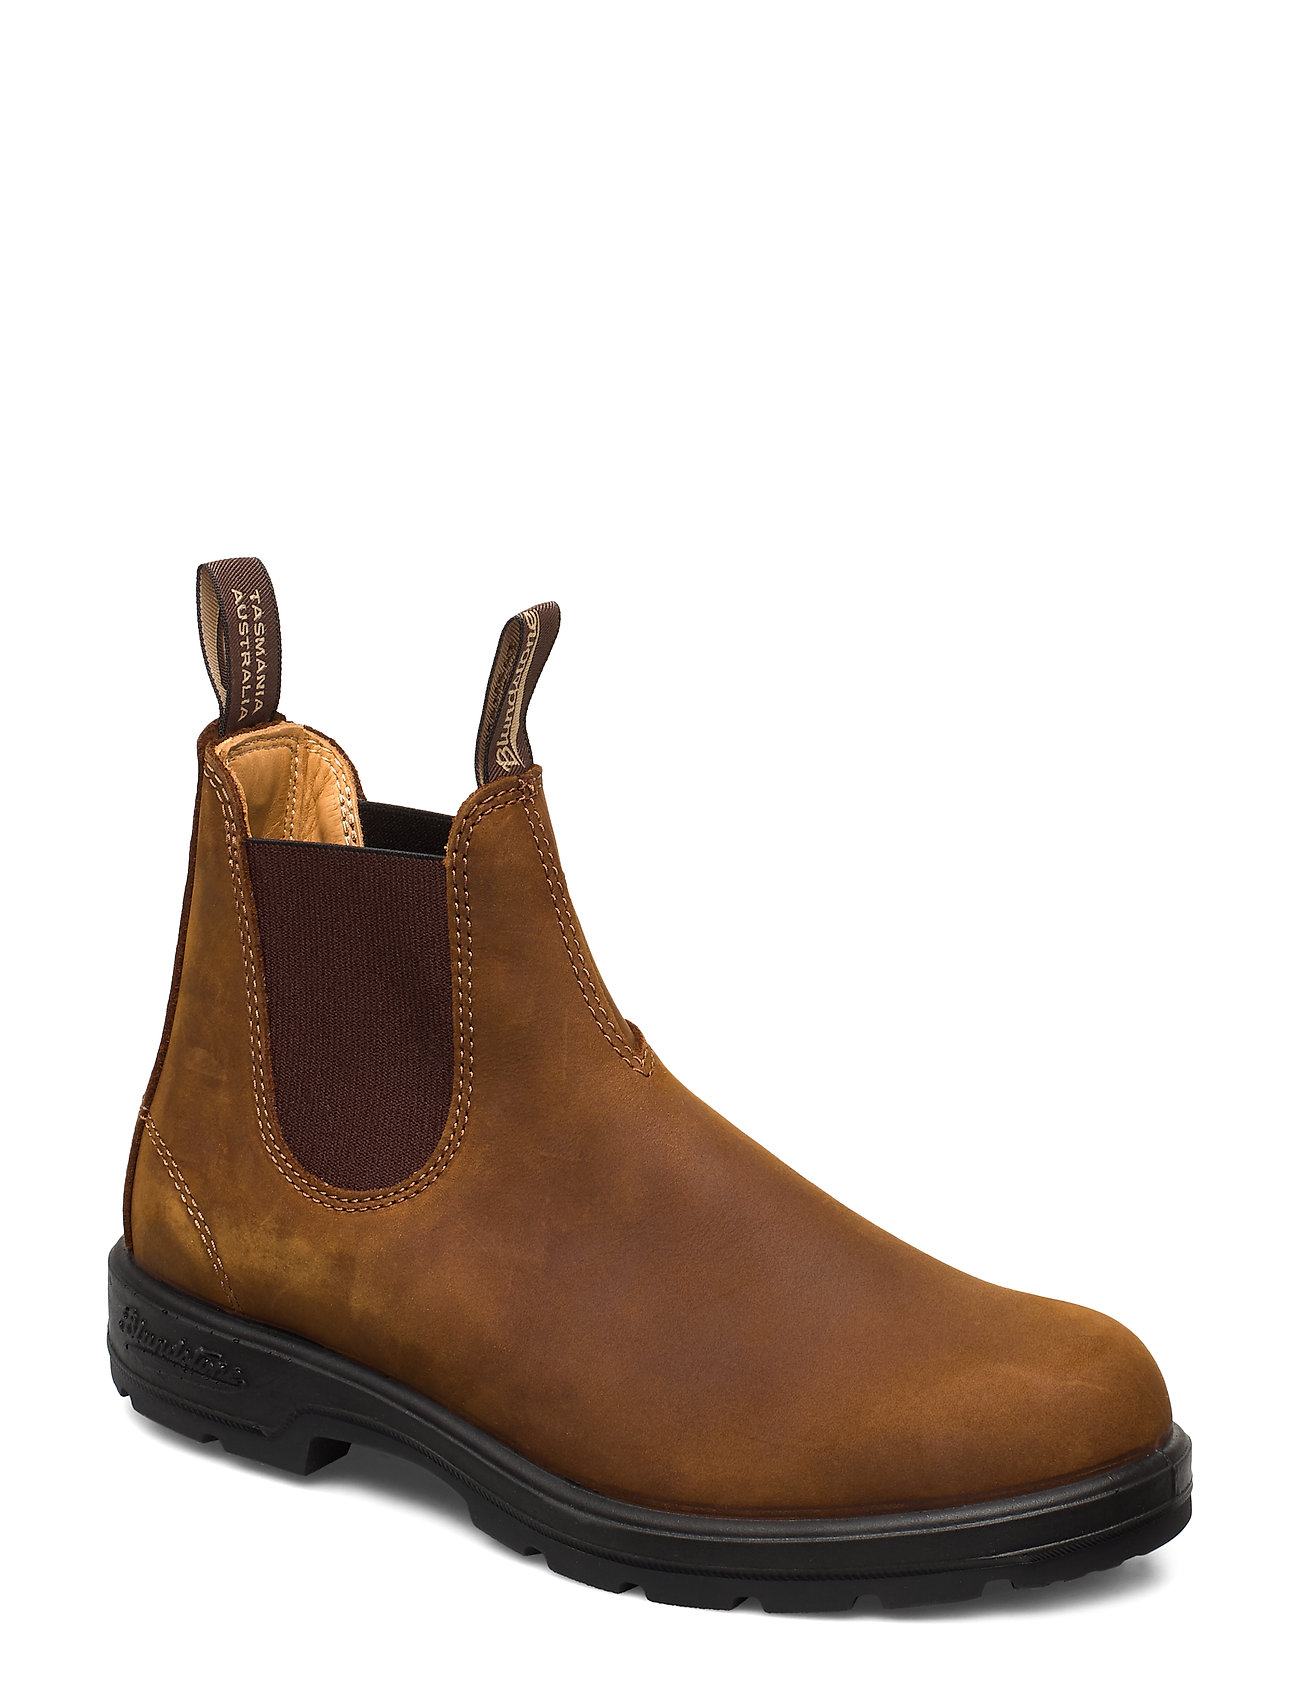 Bl Classic Comfort Shoes Chelsea Boots Ruskea Blundst, Blundstone